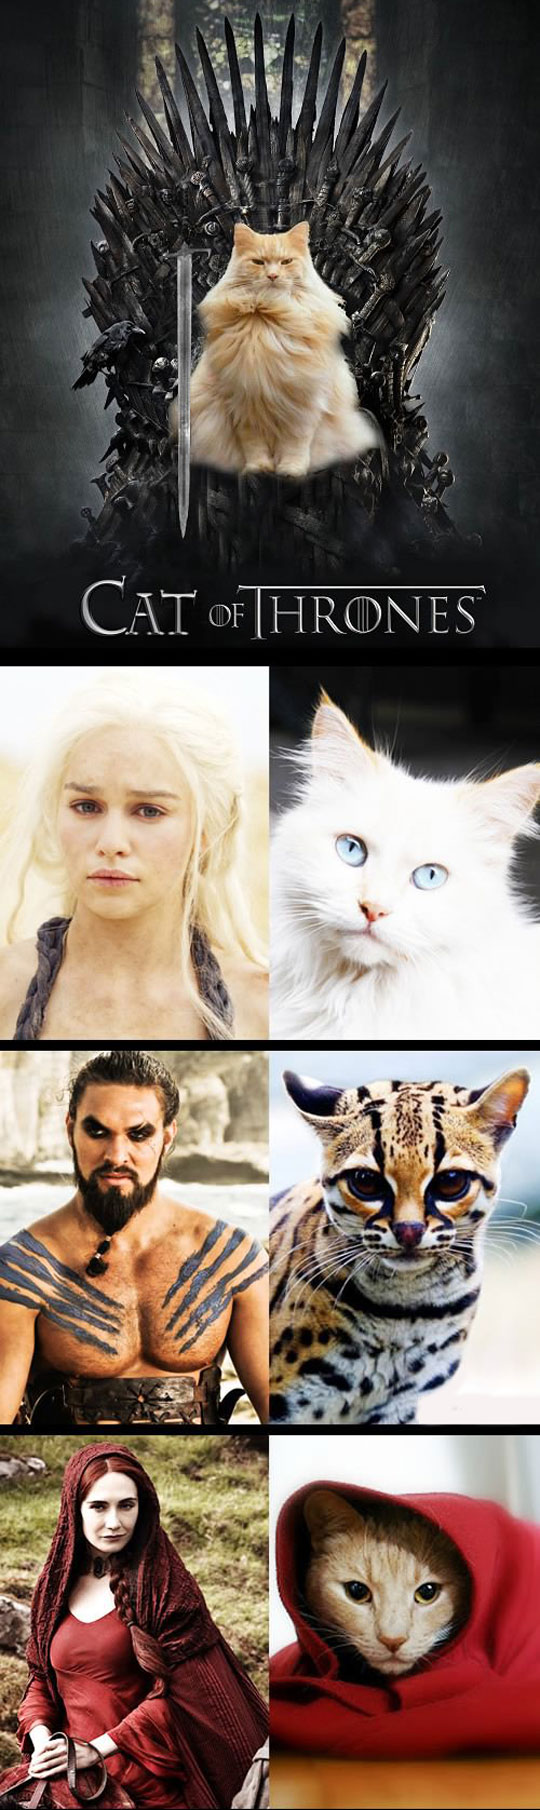 funny-cat-Game-Thrones-characters